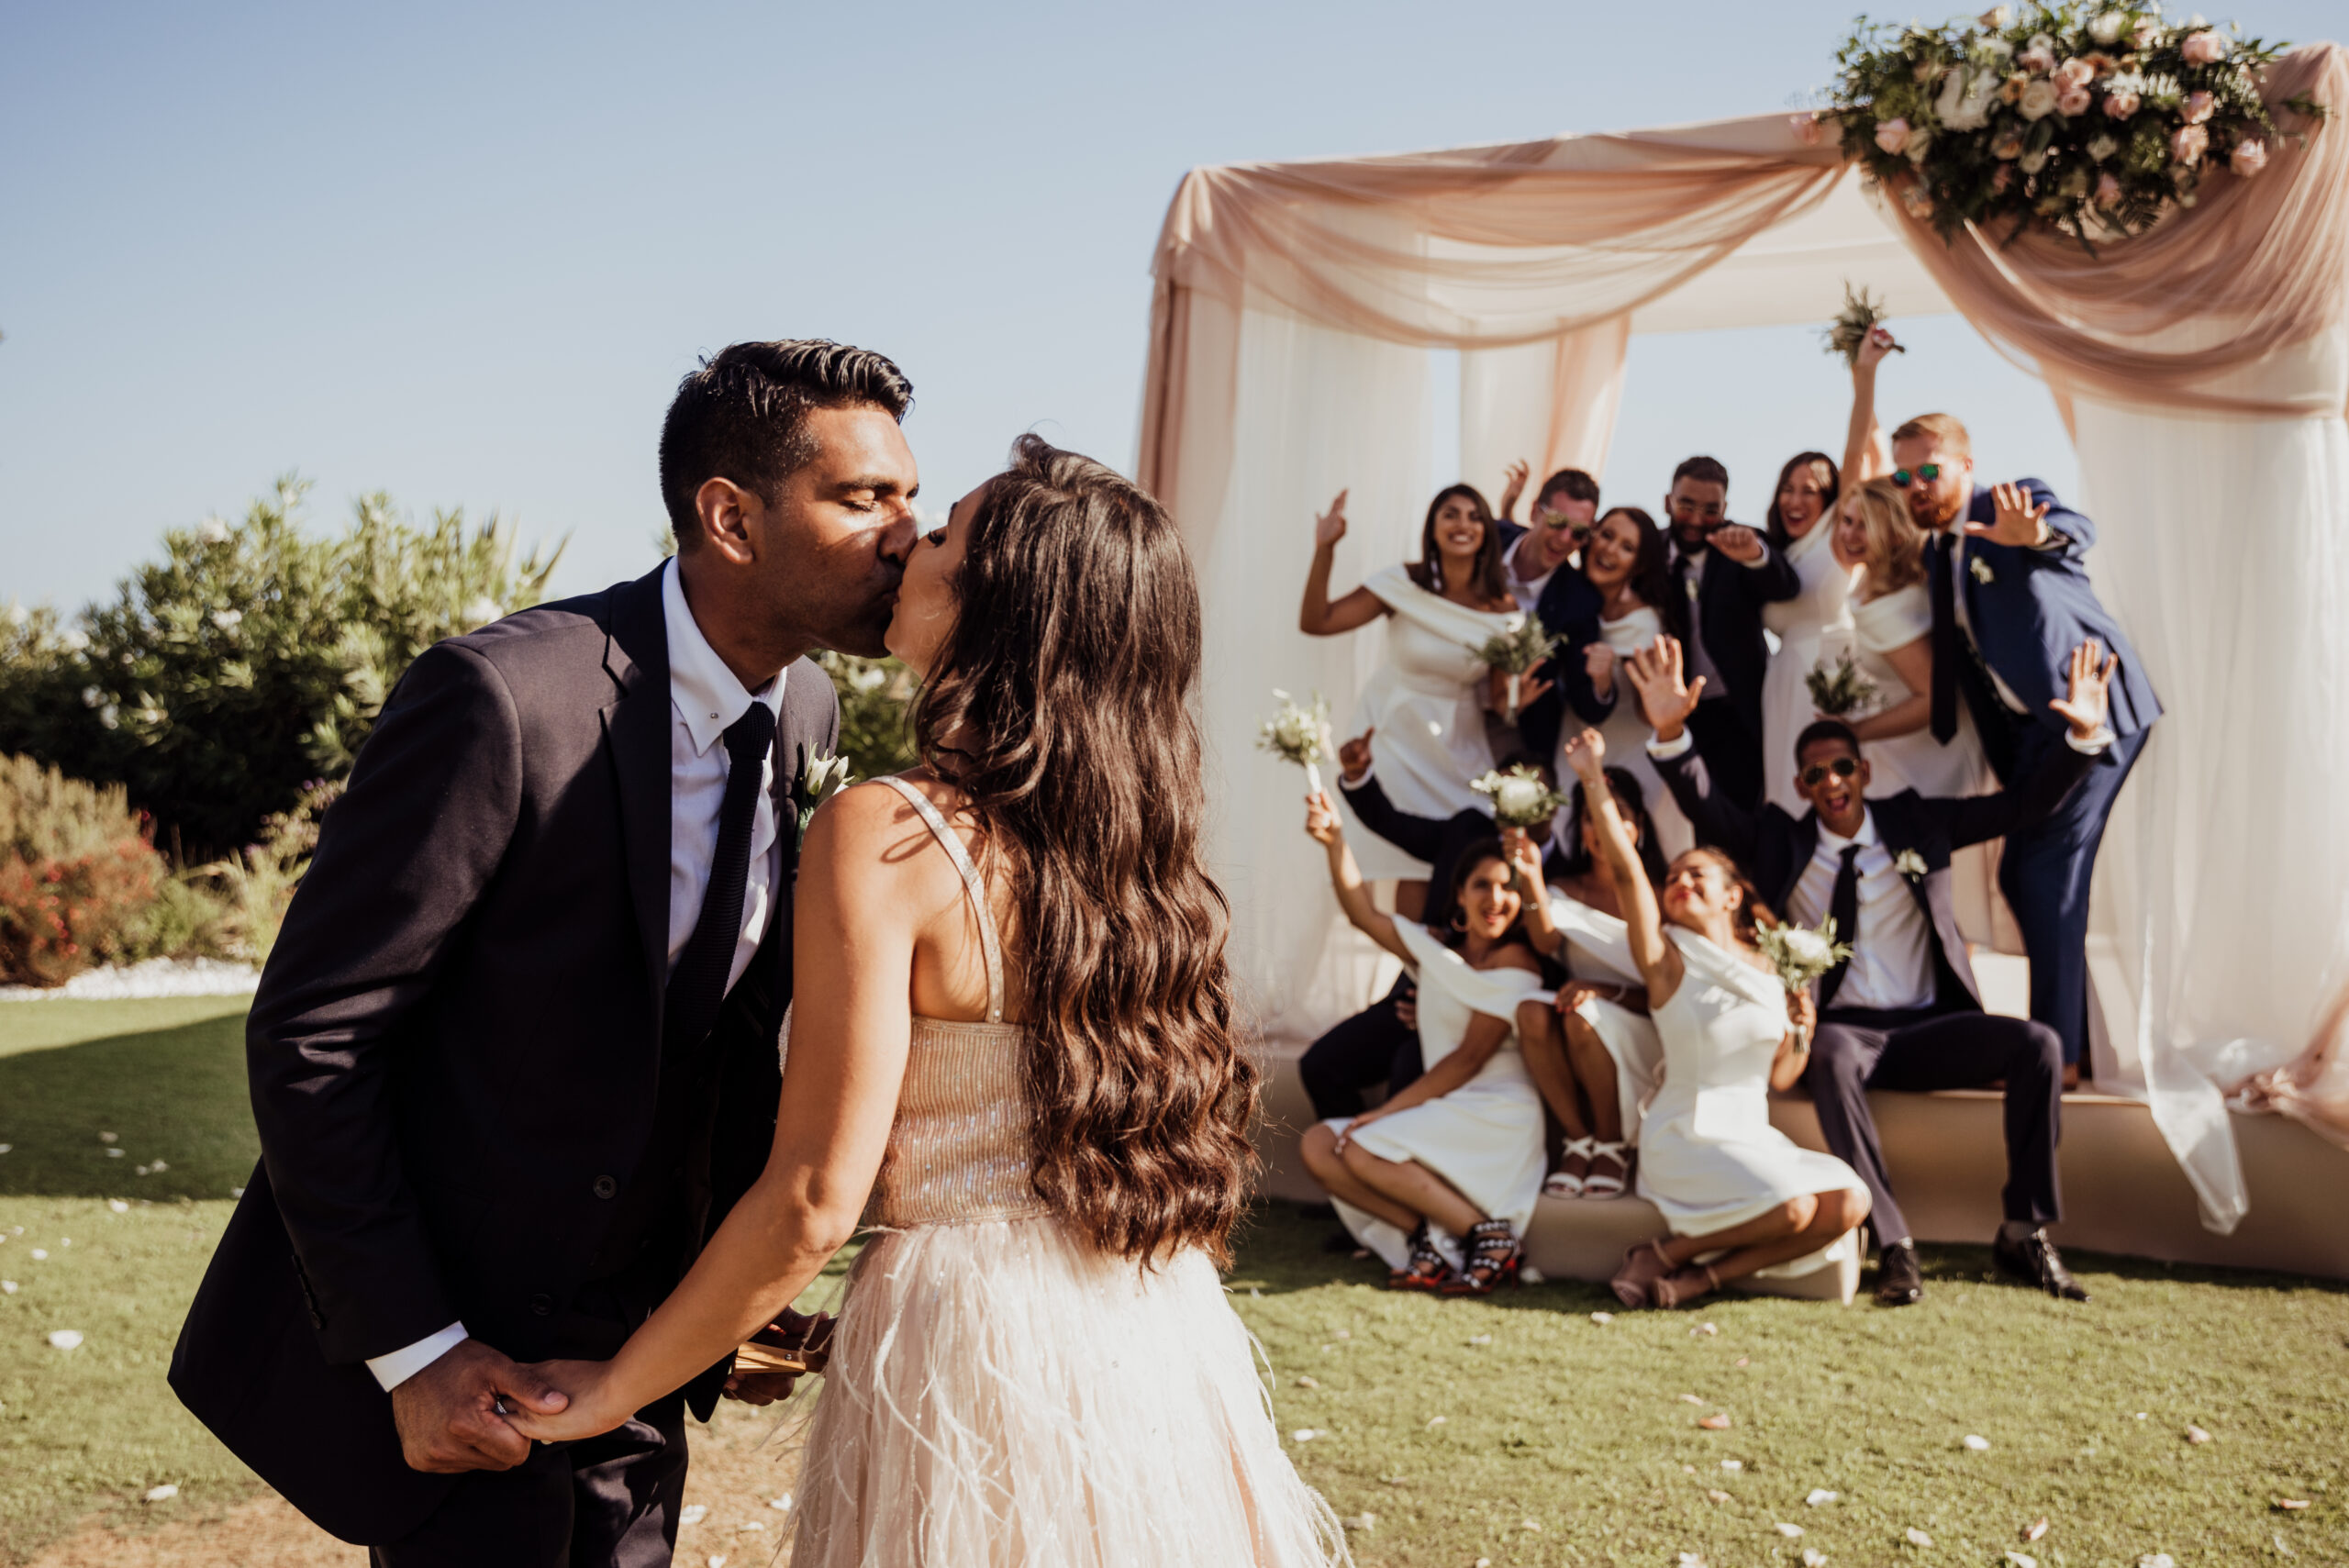 The newlyweds and their guests in the villa's gardens - Rebecca Davidson Photography